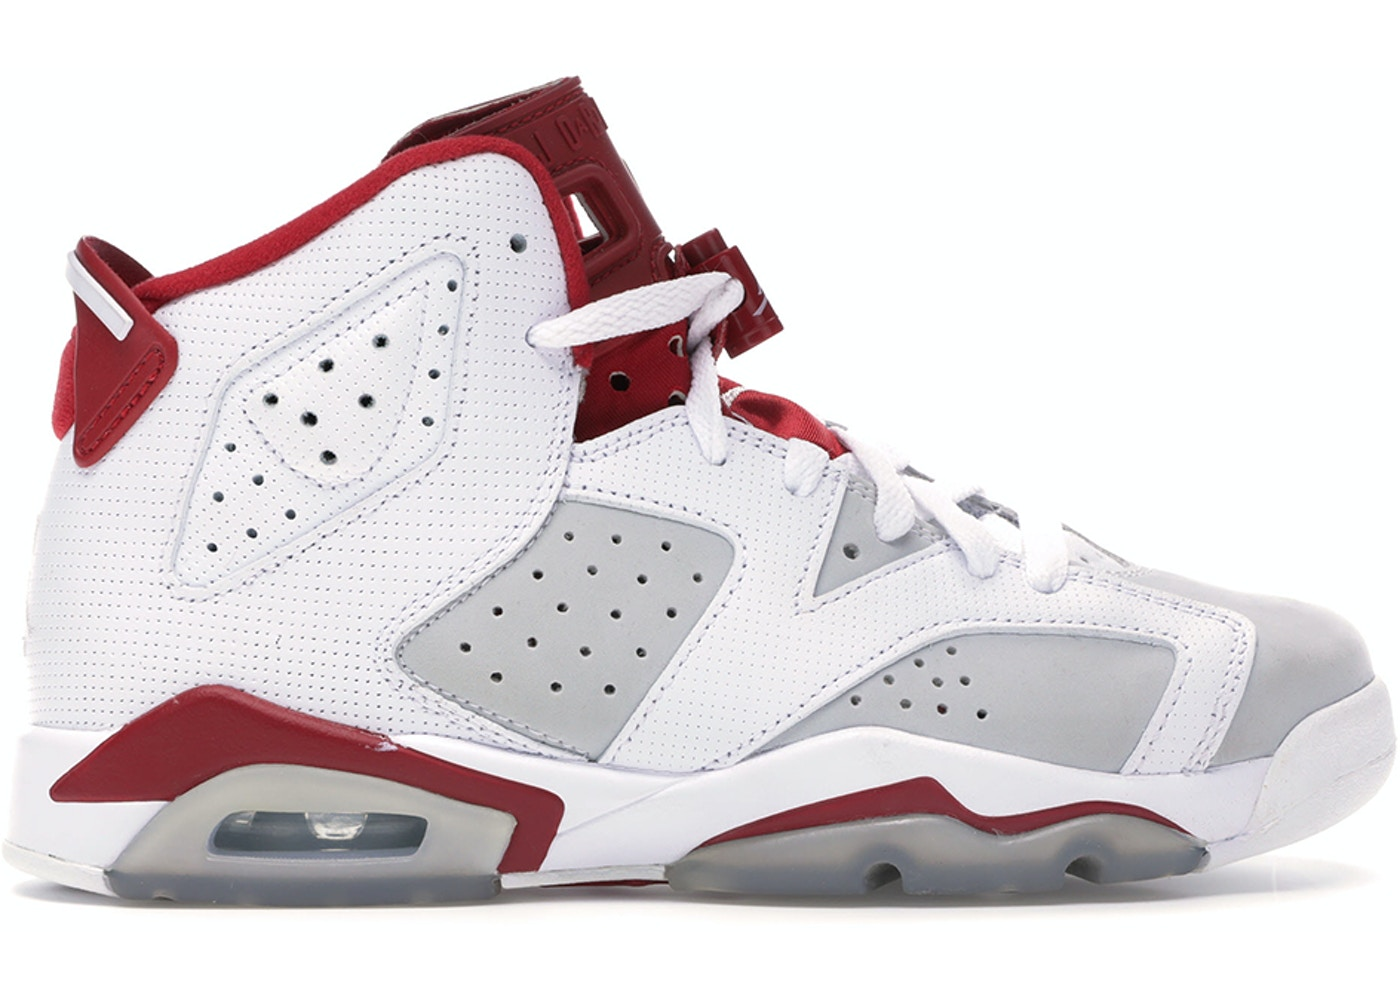 12d43c5d39ef0a Jordan 6 Retro Alternate Hare (GS) - 384665-113